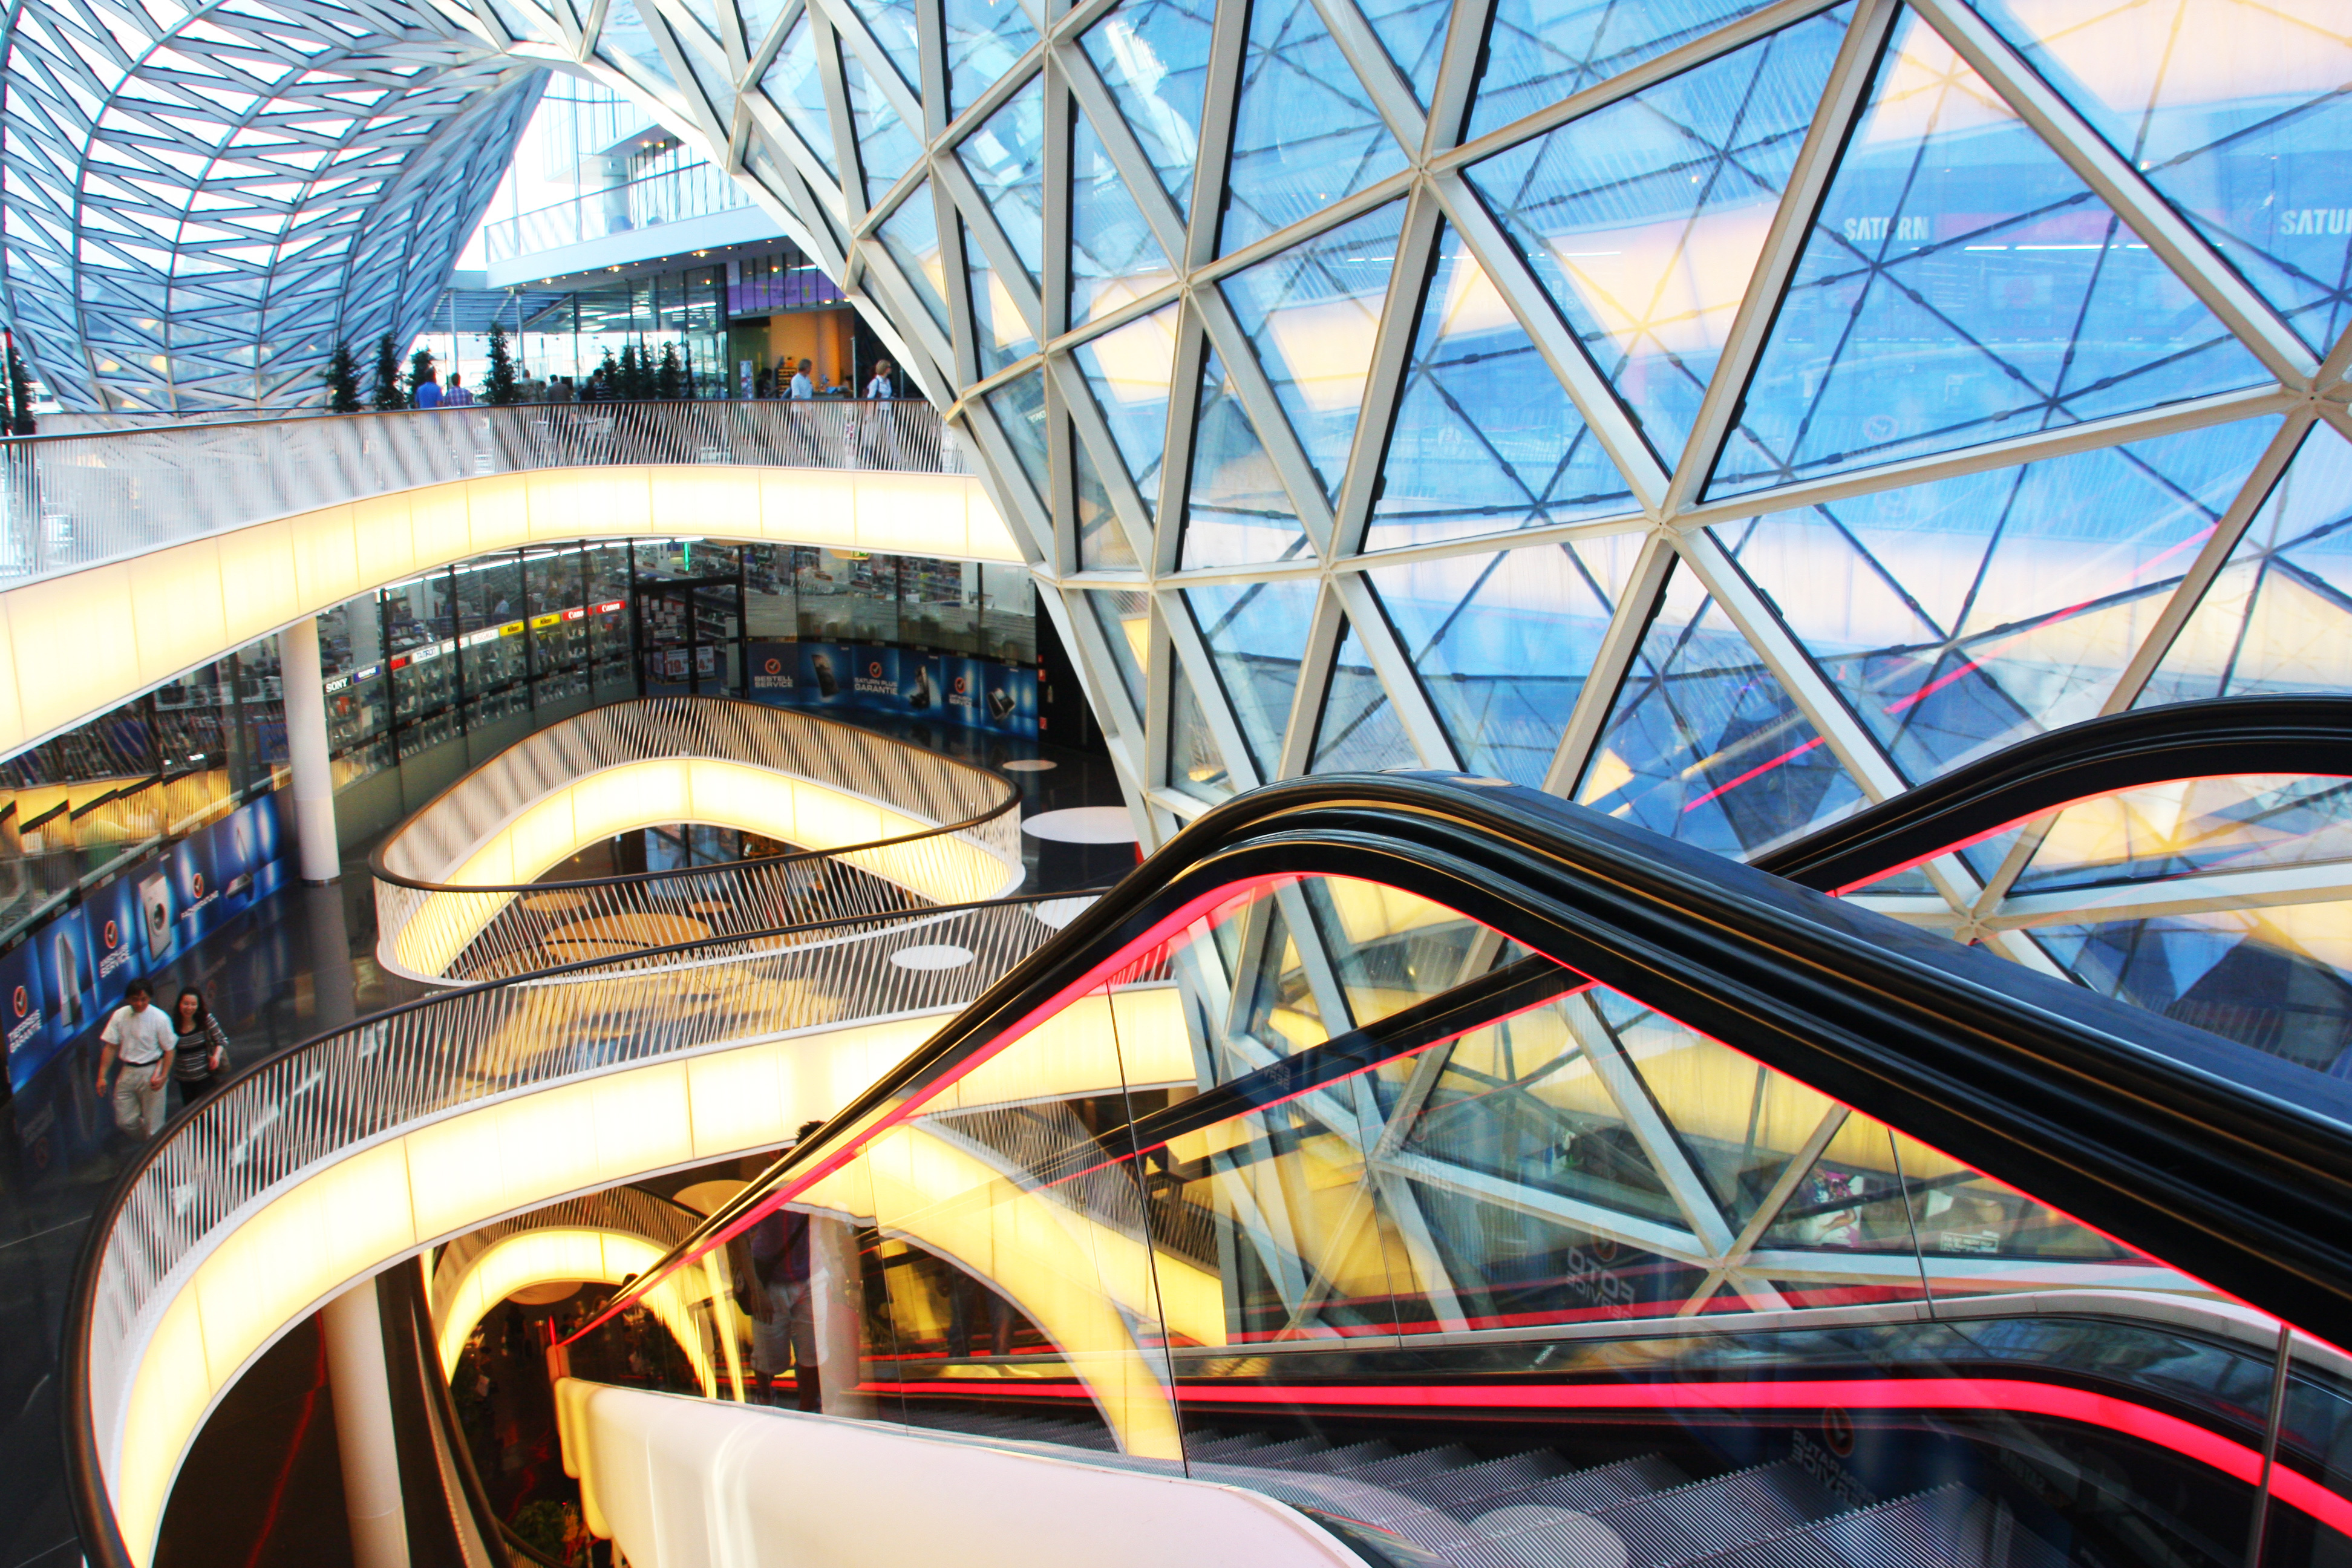 File:Myzeil-knippershelbig-03.jpg - Wikimedia Commons